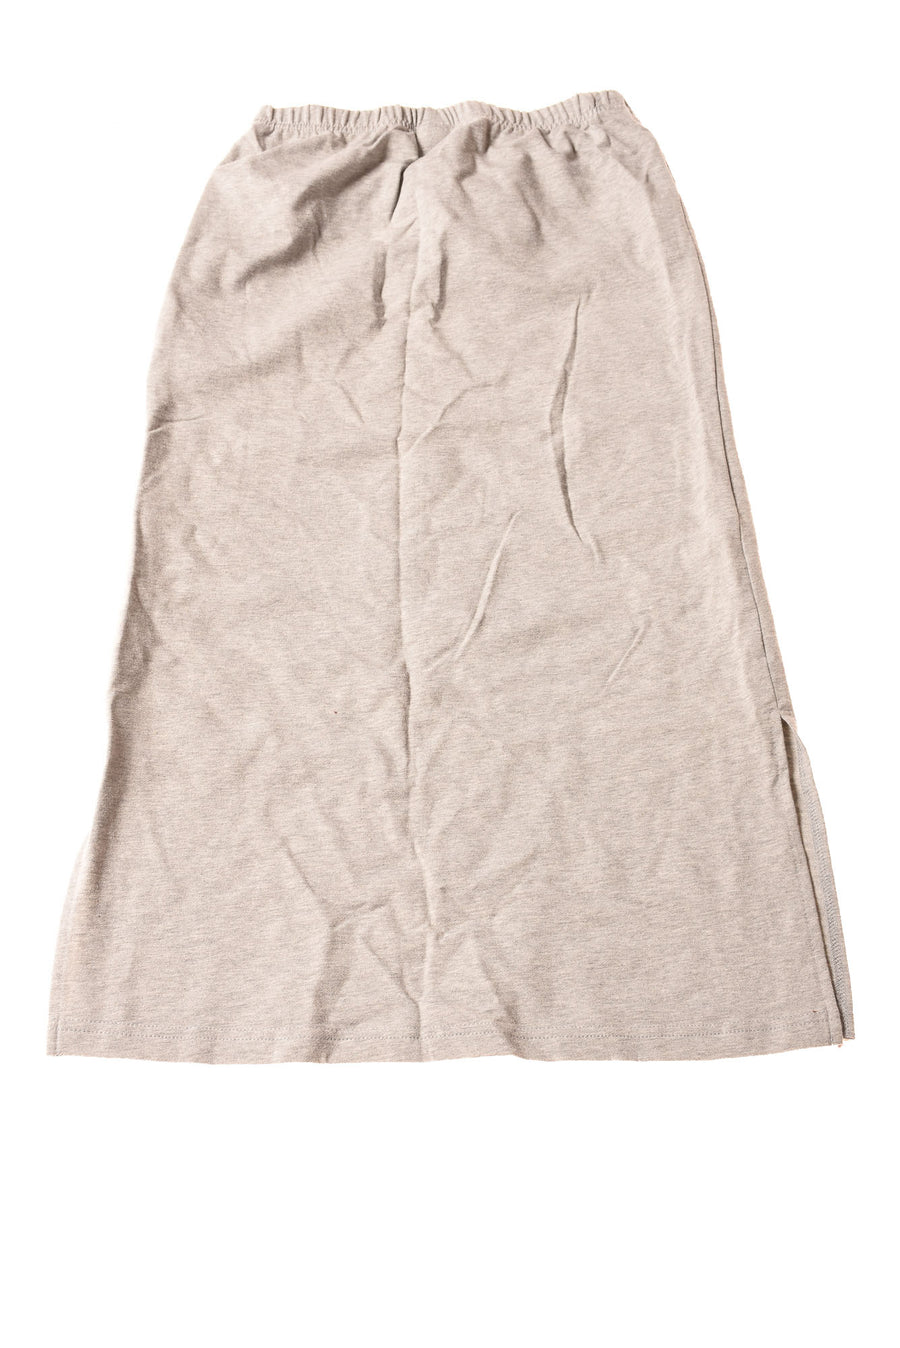 Girl's Skirt By Old Navy